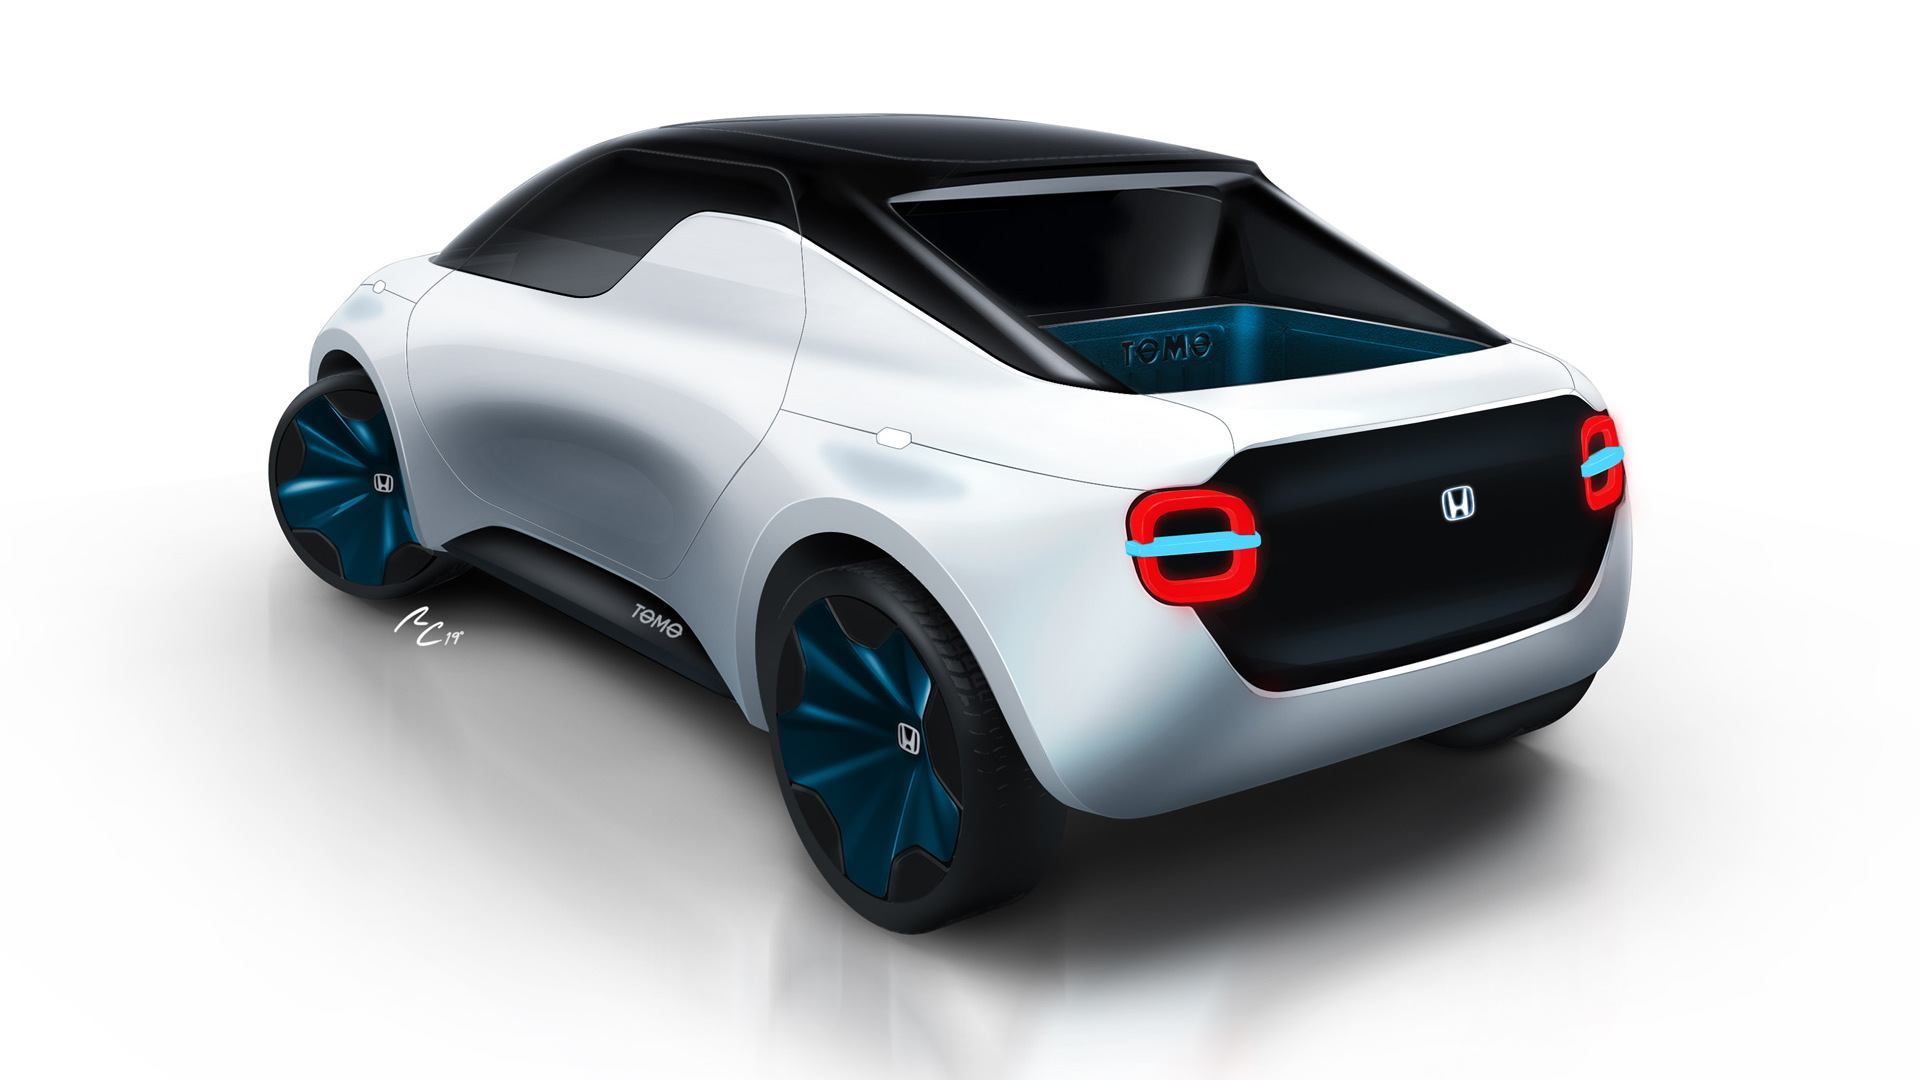 Teaser for Honda Tomo concept debuting at 2019 Geneva auto show